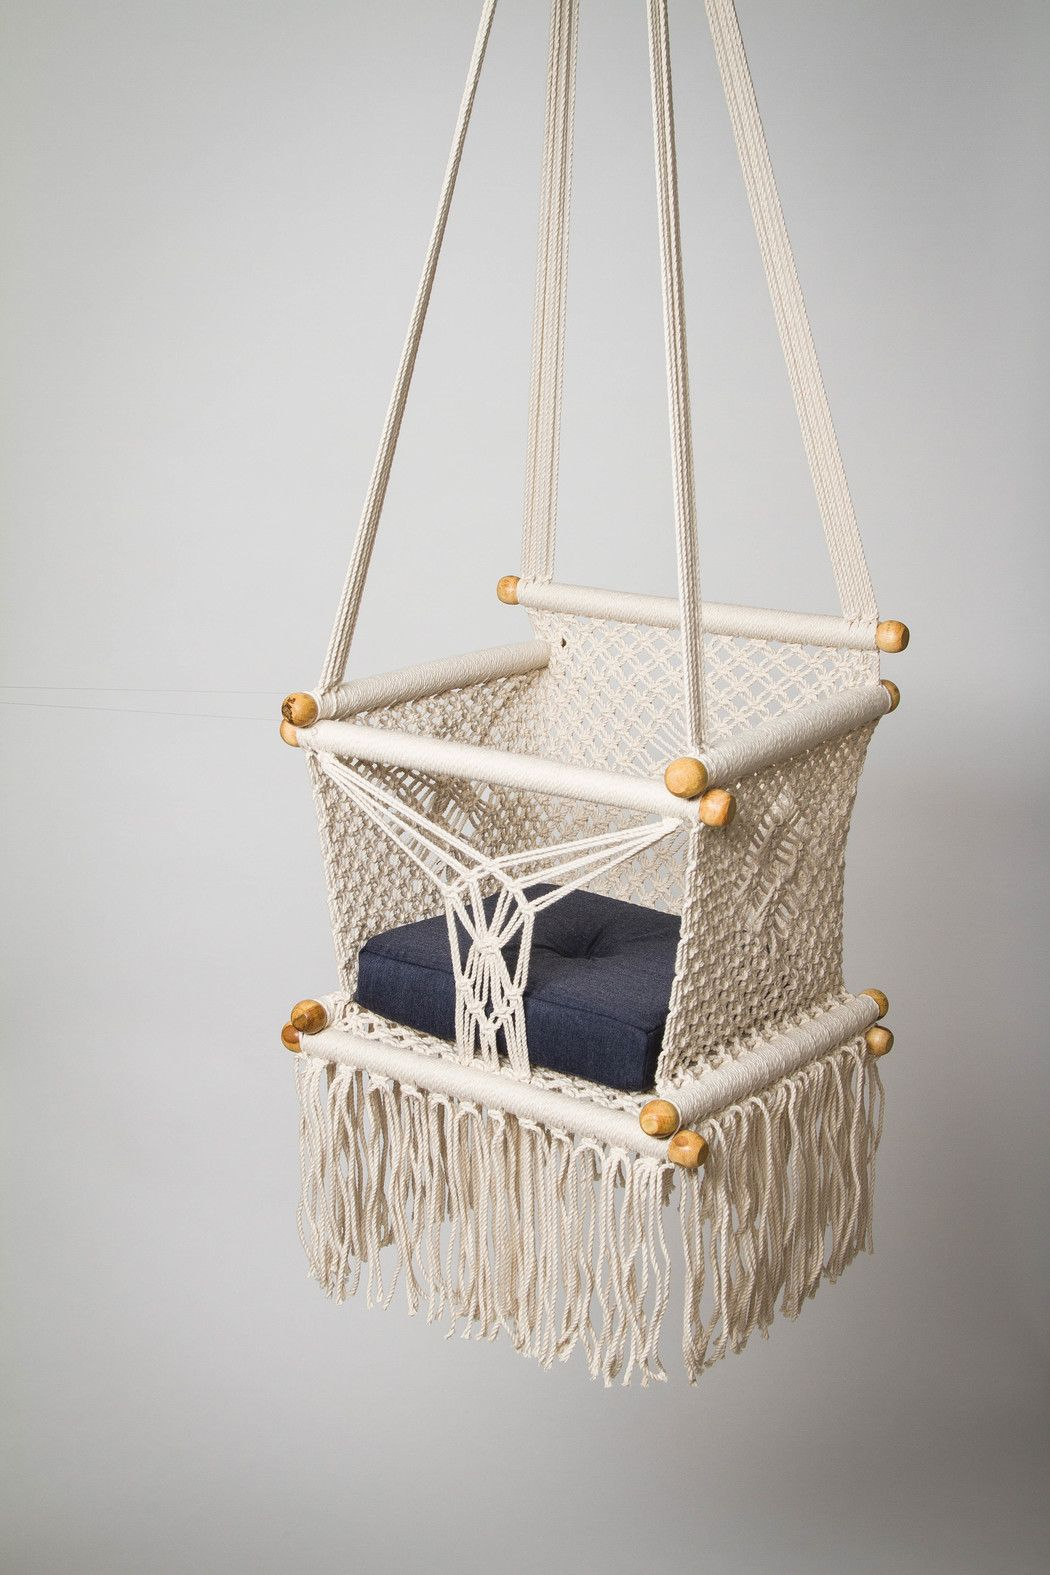 Swing your baby in style with this boho swing chair